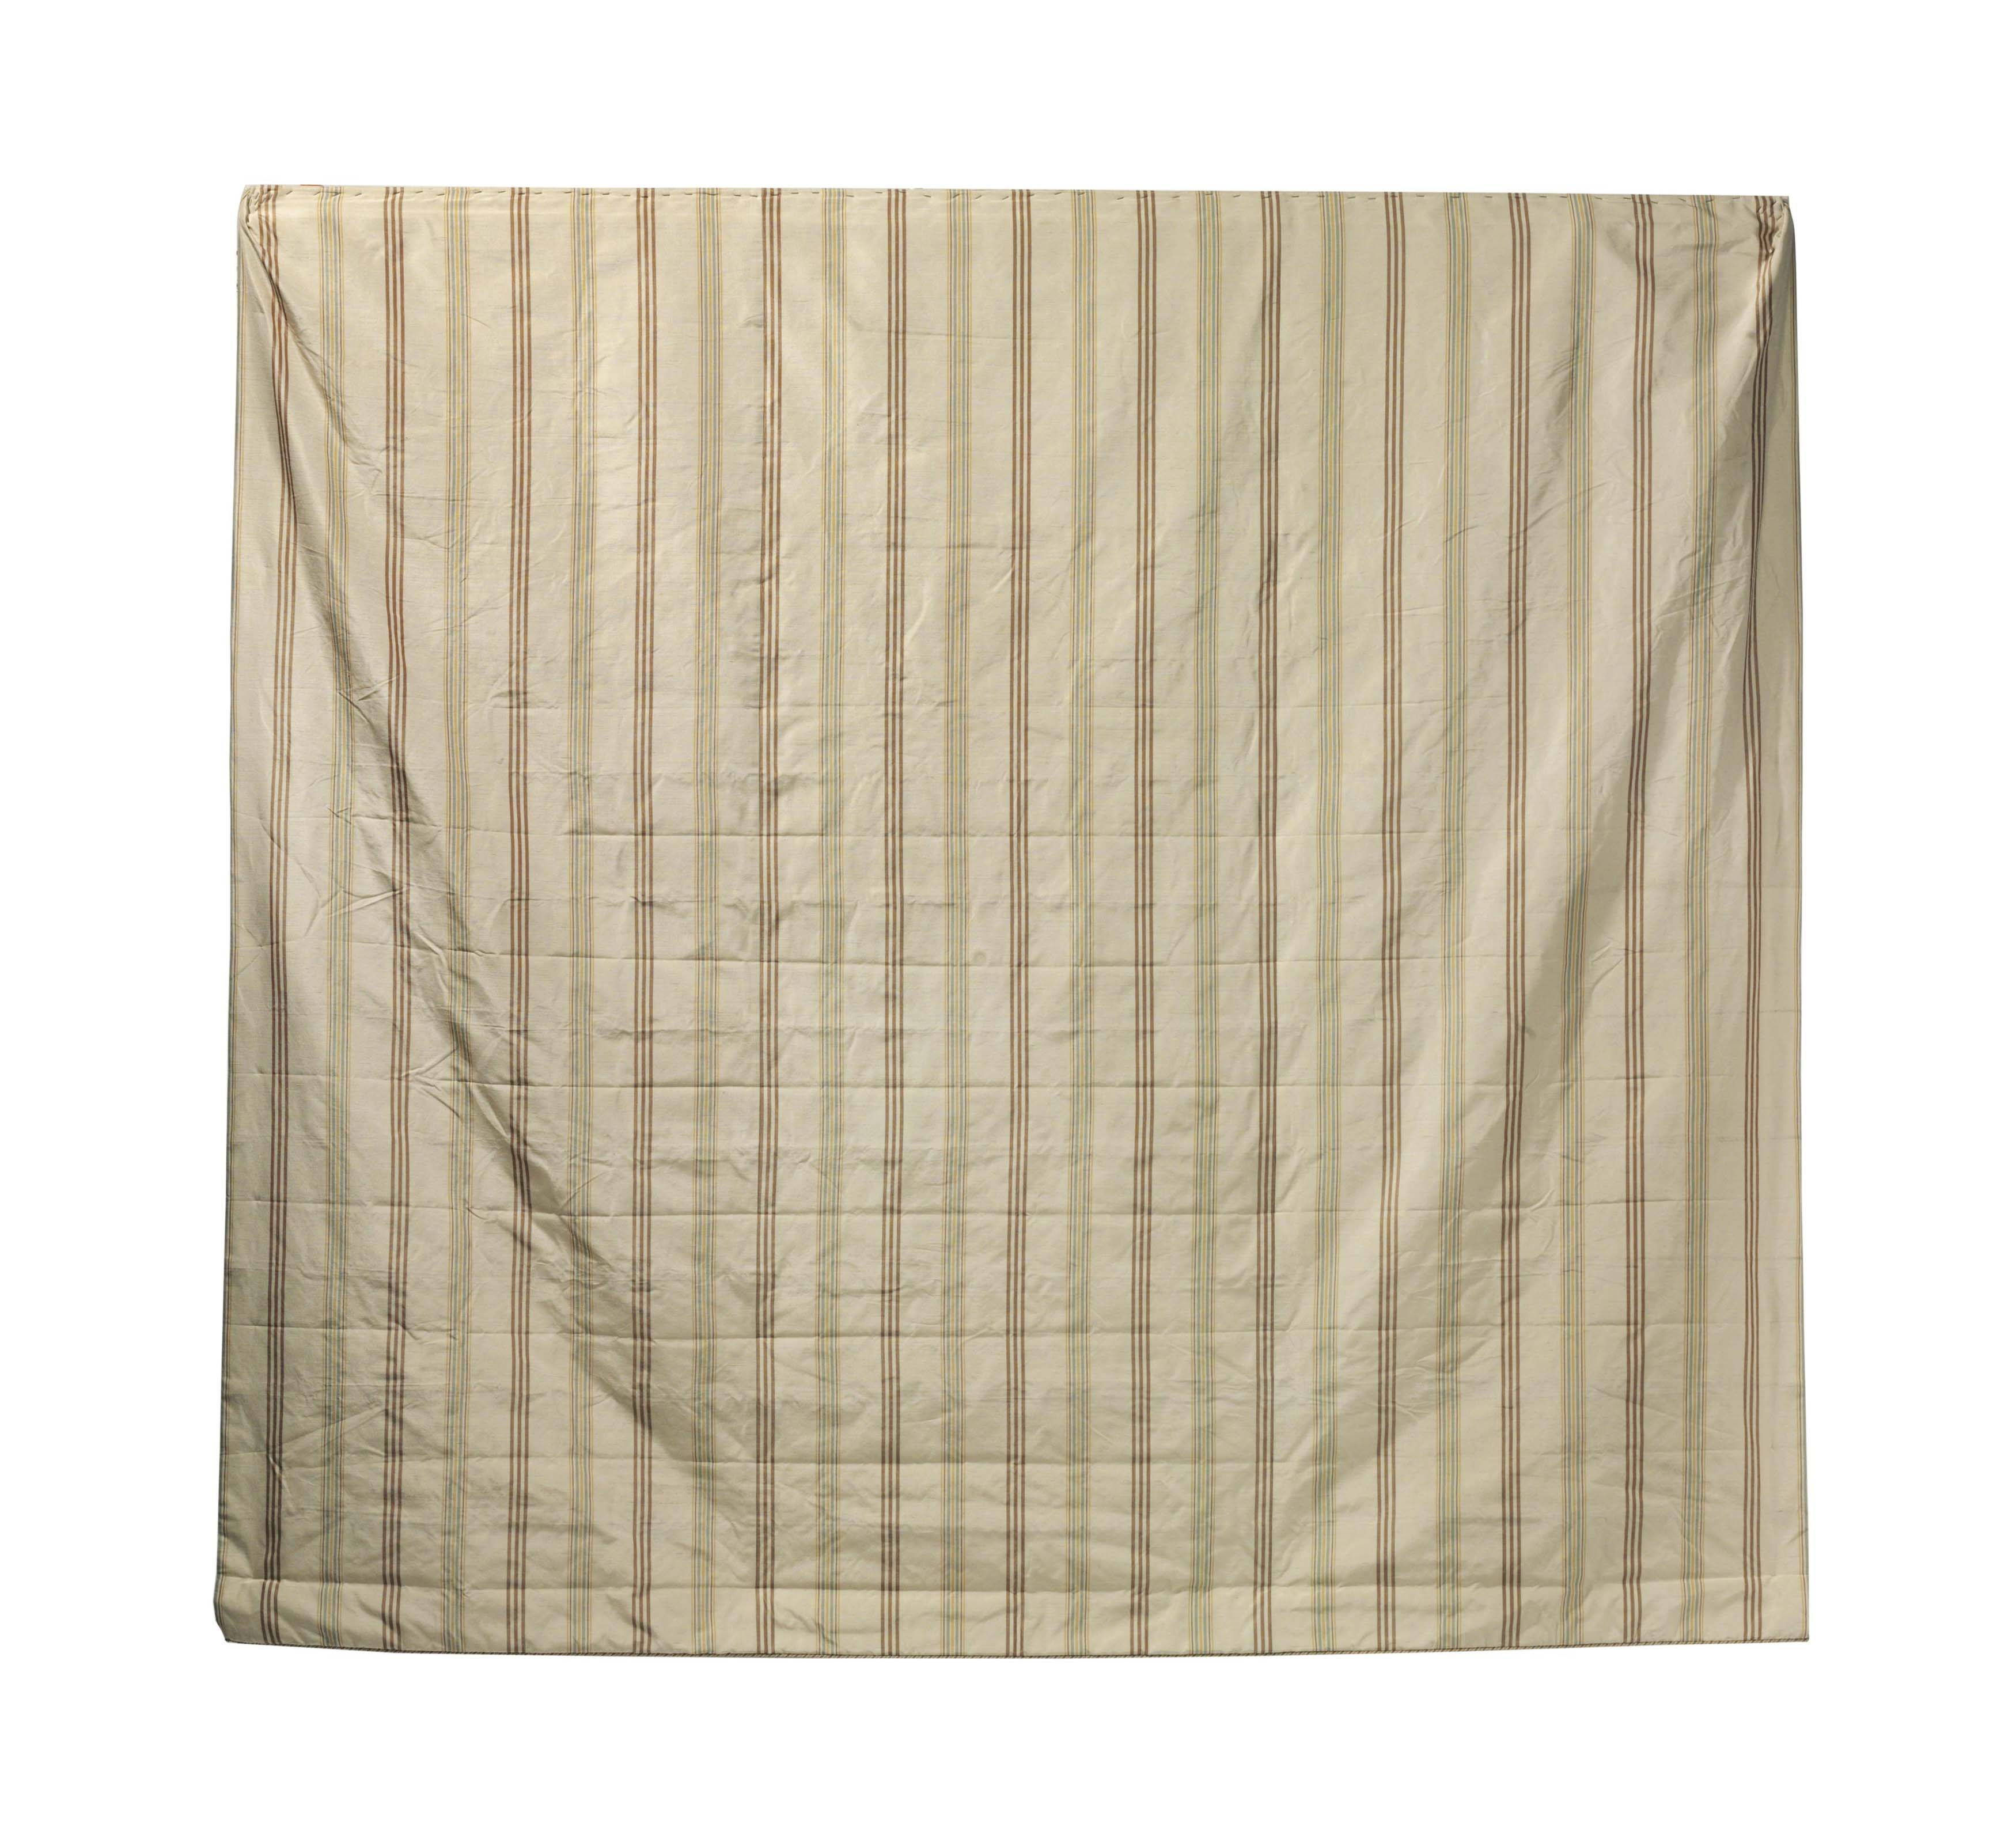 A GROUP OF SEVEN CREAM AND TAUPE STRIPED SILK CURTAIN PANELS.